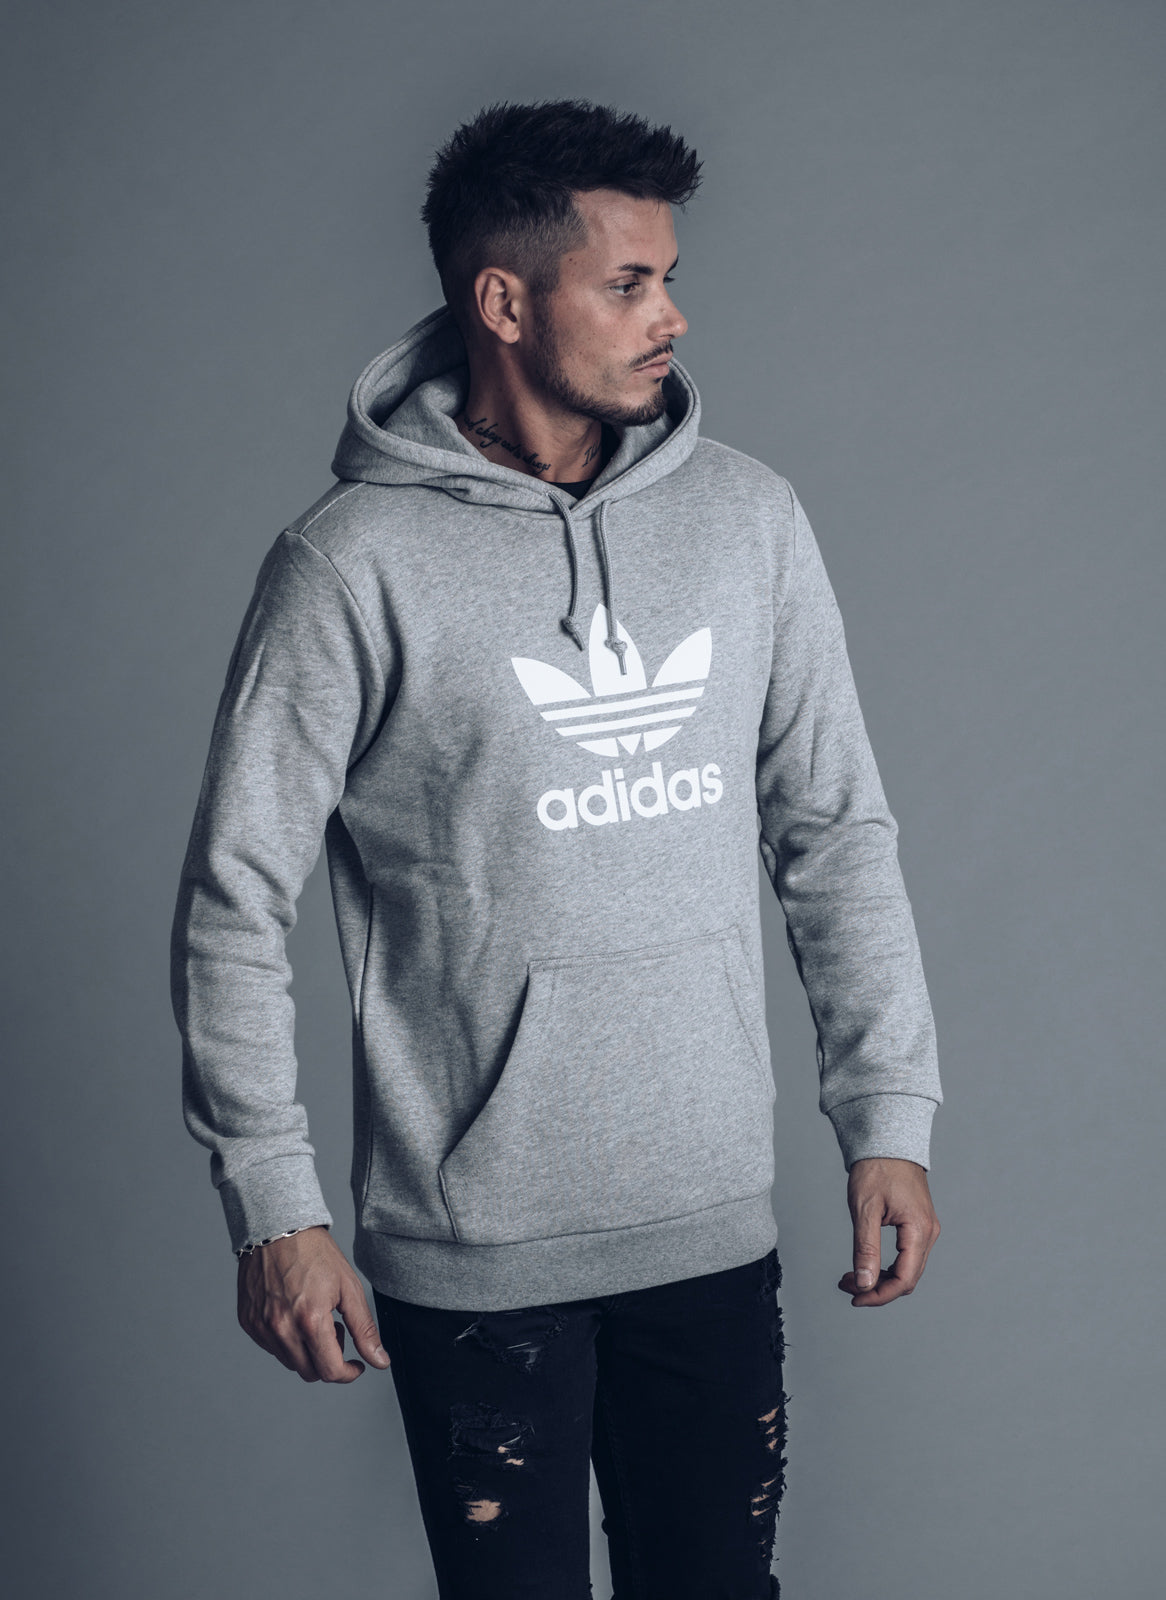 cheap sale official shop coupon codes Trefoil Hoodie Grey - Adidas – Topdepartment